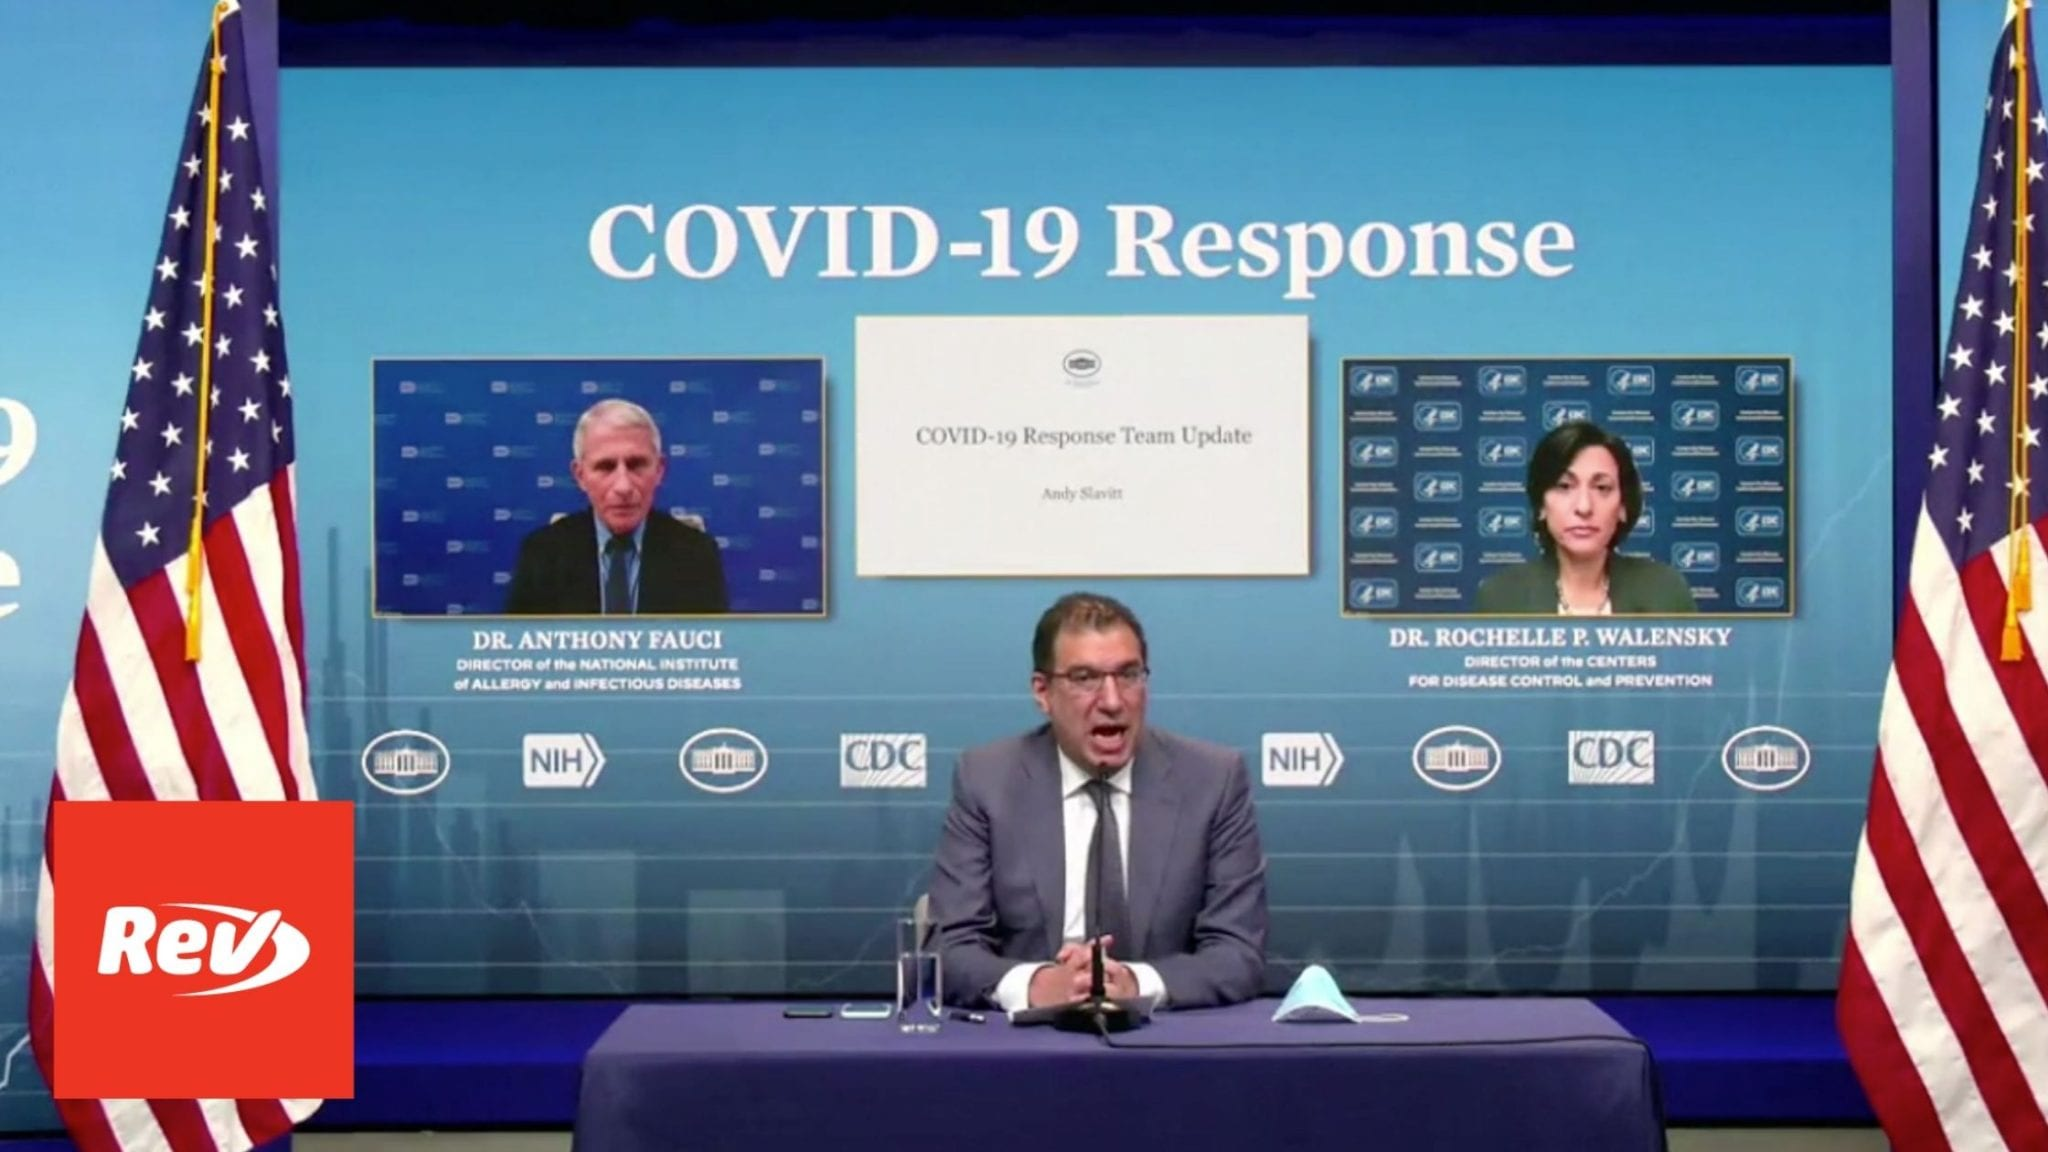 White House COVID-19 Response Team, Dr. Fauci Press Conference Transcript January 29